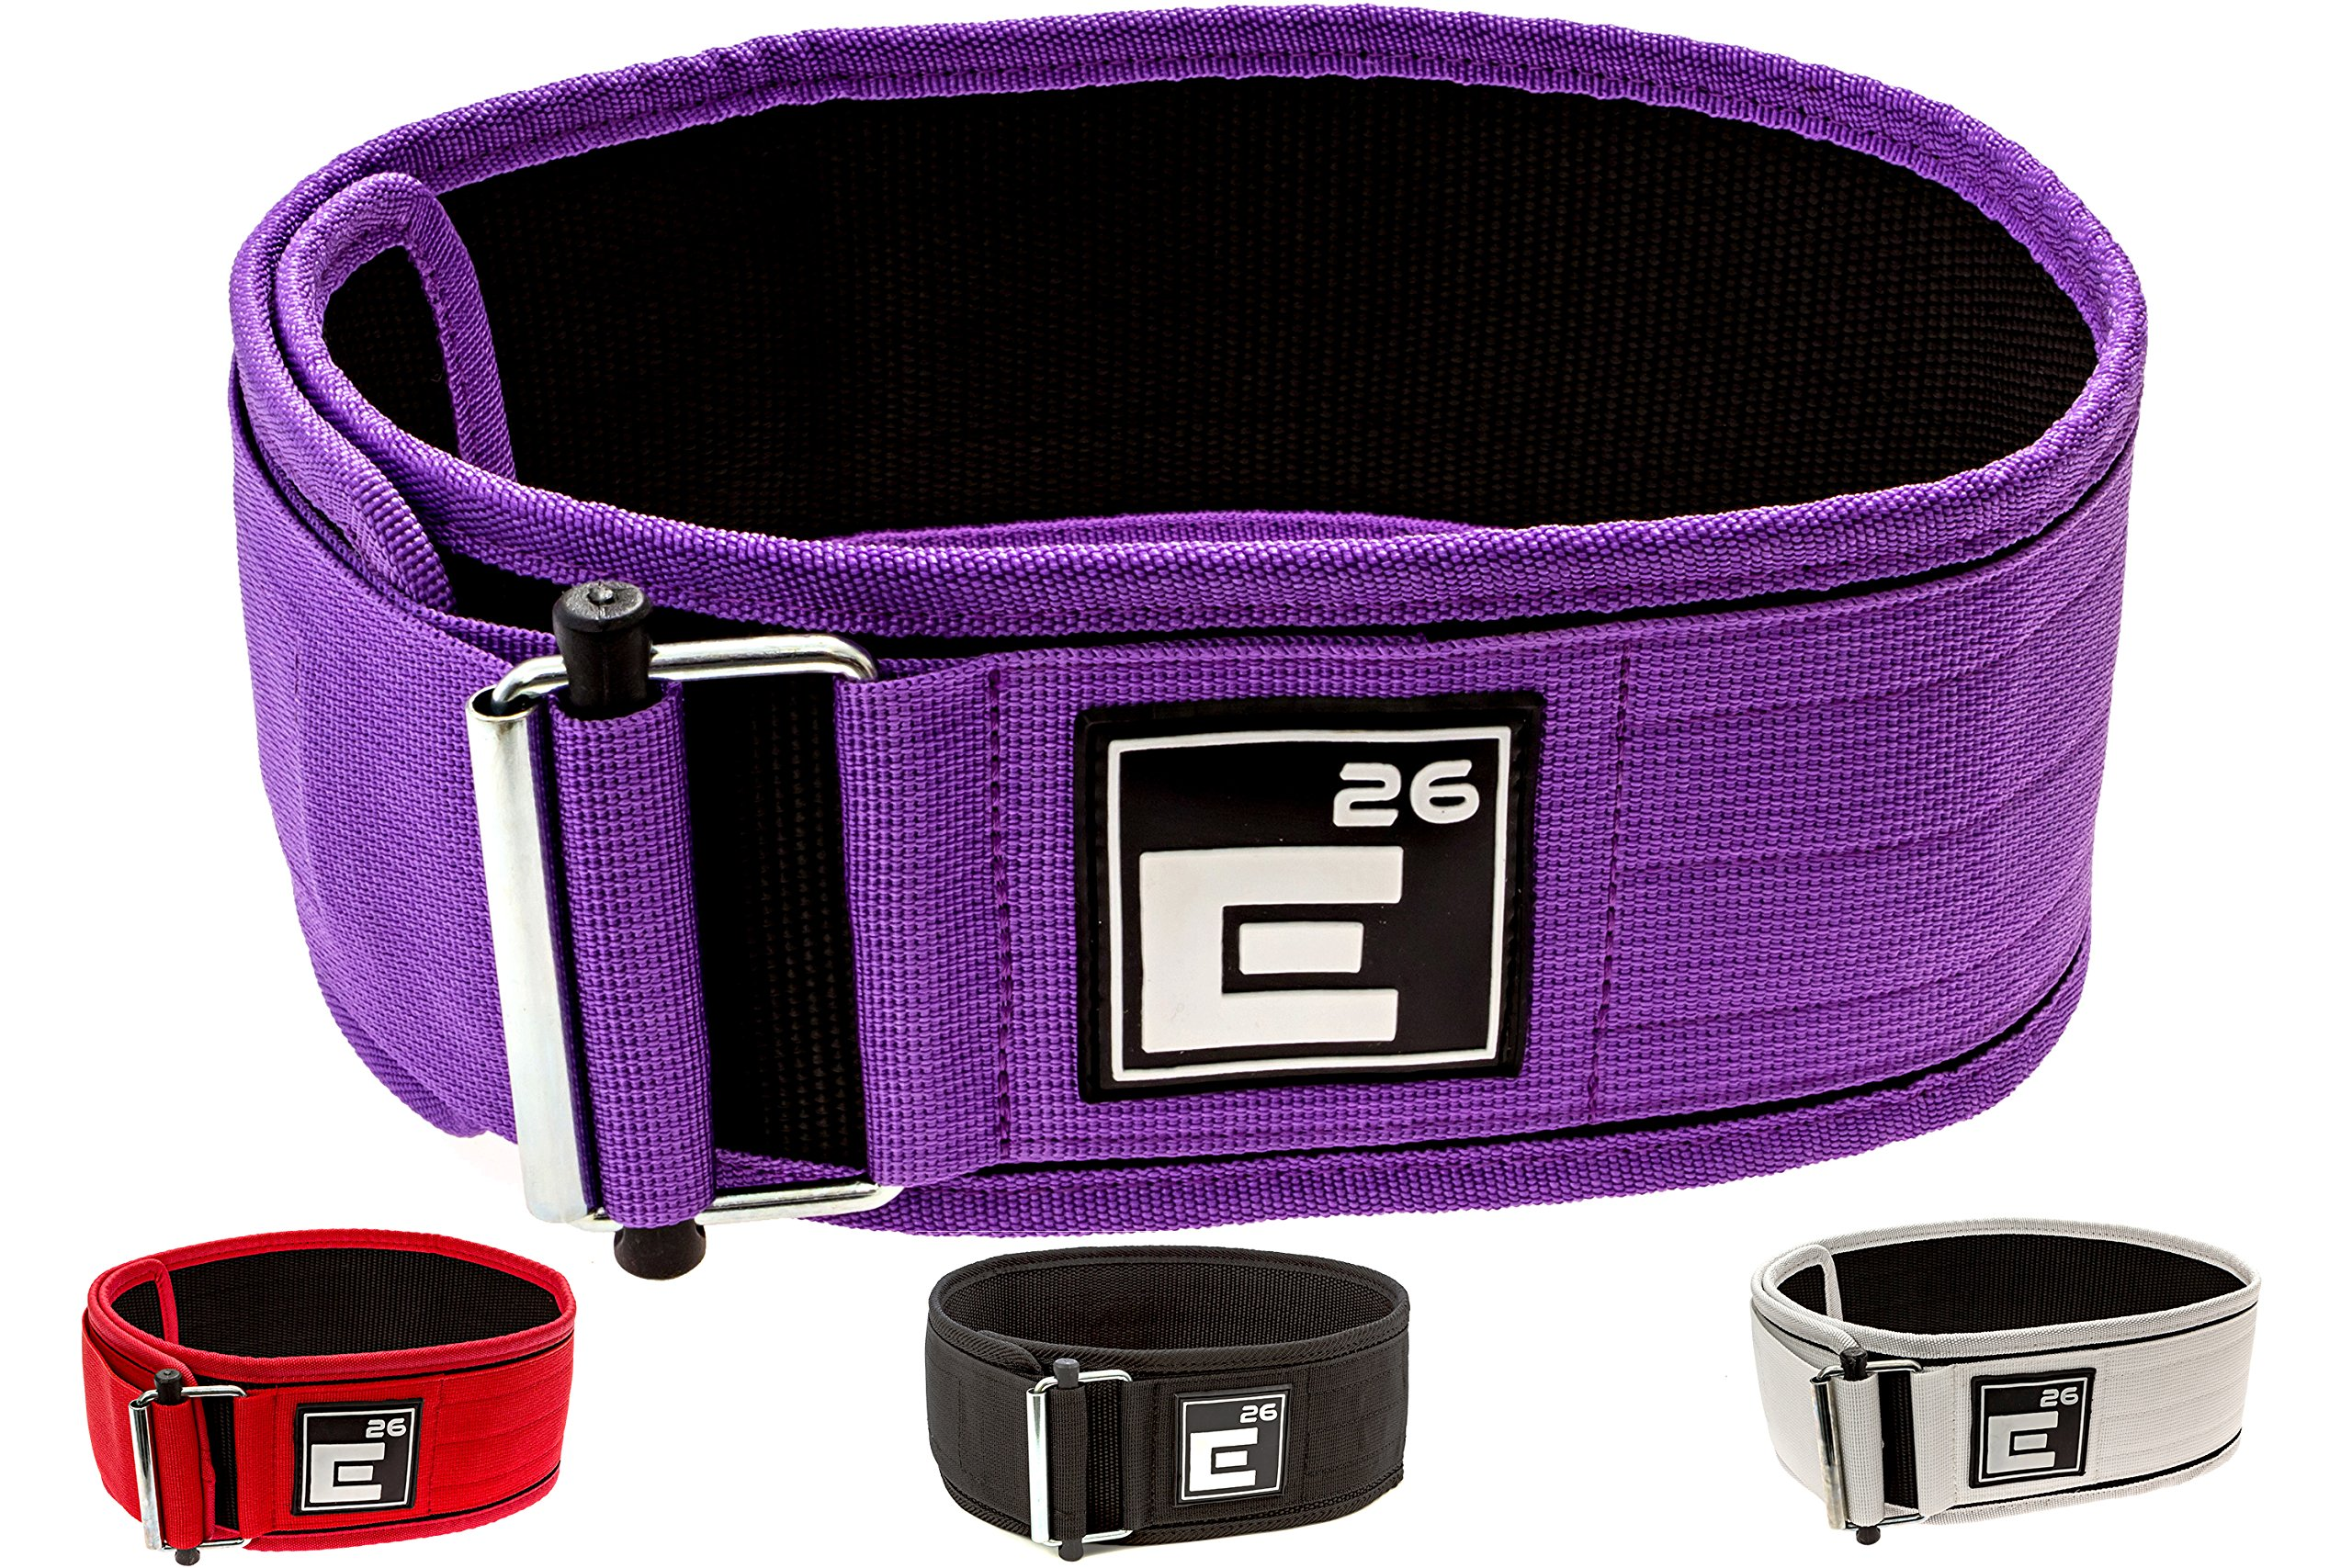 Element 26 Self-Locking Weight Lifting Belt | Premium Weightlifting Belt for Serious Crossfit, Weight Lifting, and Olympic Lifting Athletes (Extra Small, Purple)